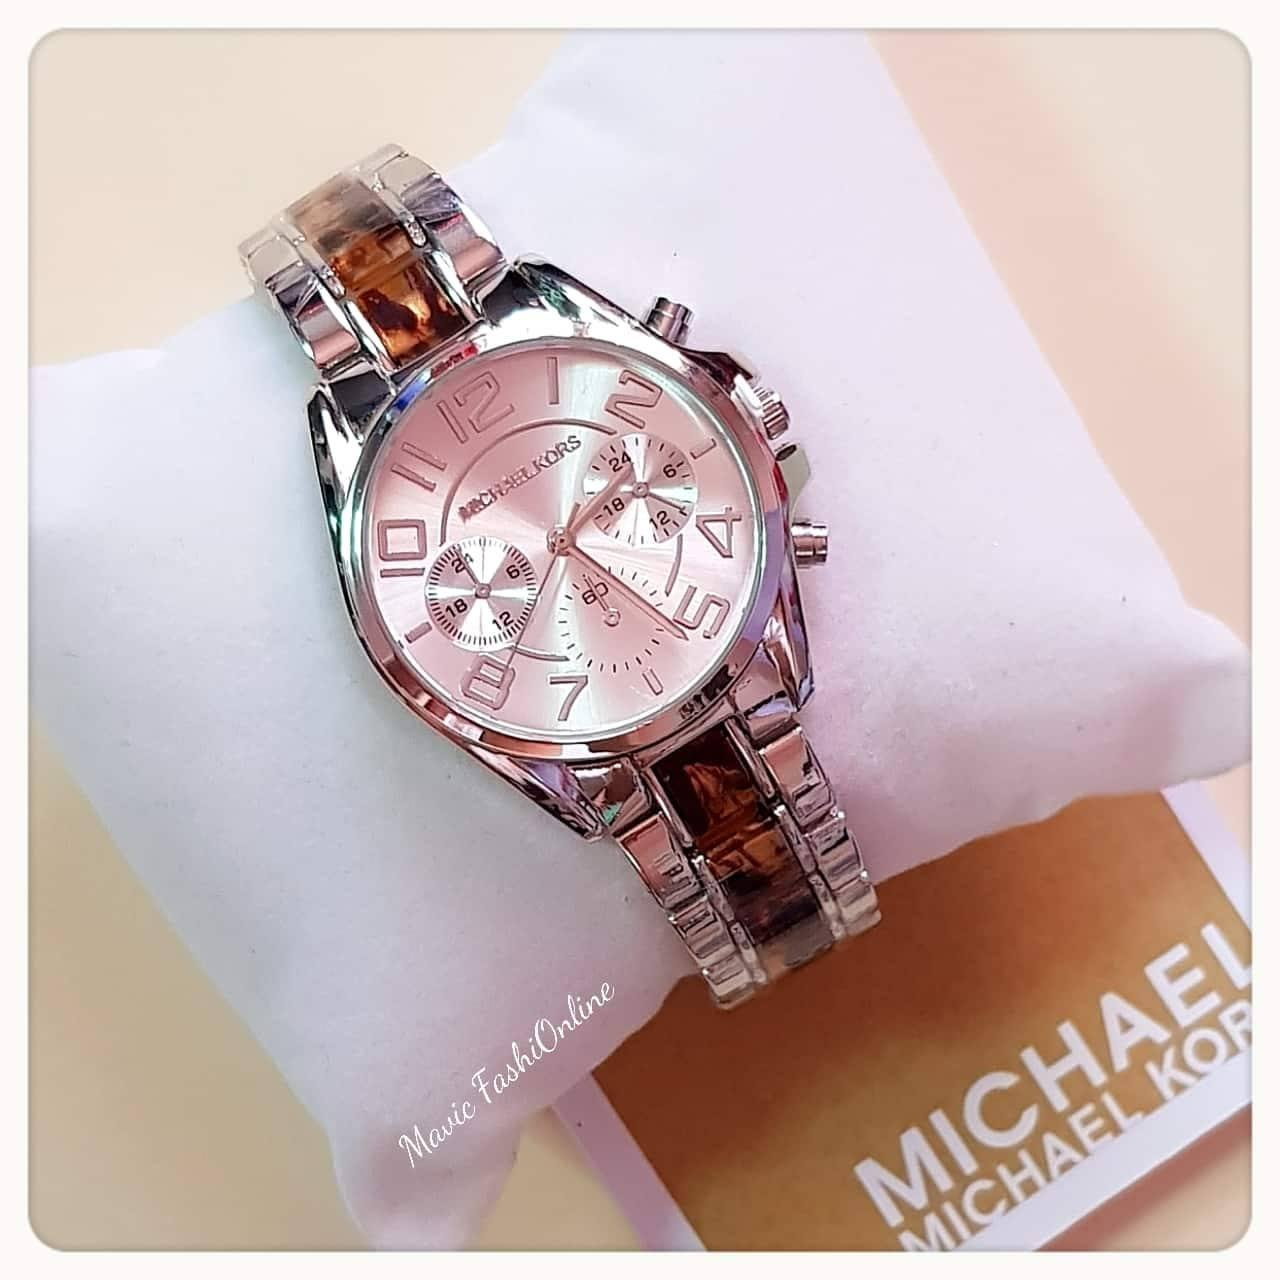 fc03f78e3232 Michael Kors Philippines  Michael Kors price list - Michael Kors Watches